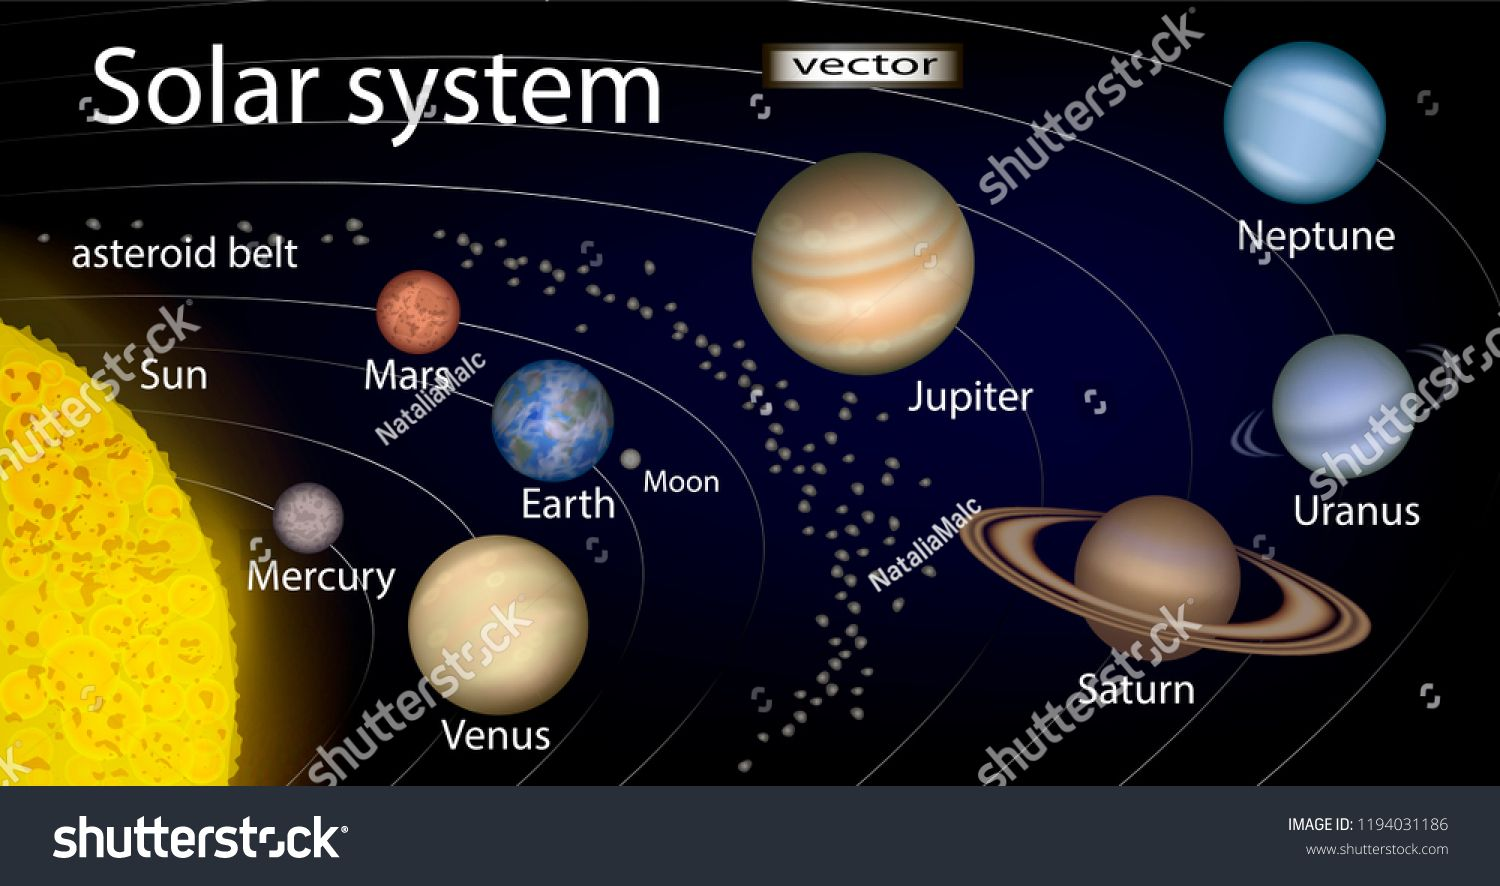 Vector Illustration Of Diagram Of Solar System 3d Realistic Image With The Planets The Sun The Moon The Asteroid B Asteroid Belt Solar System Planets Images